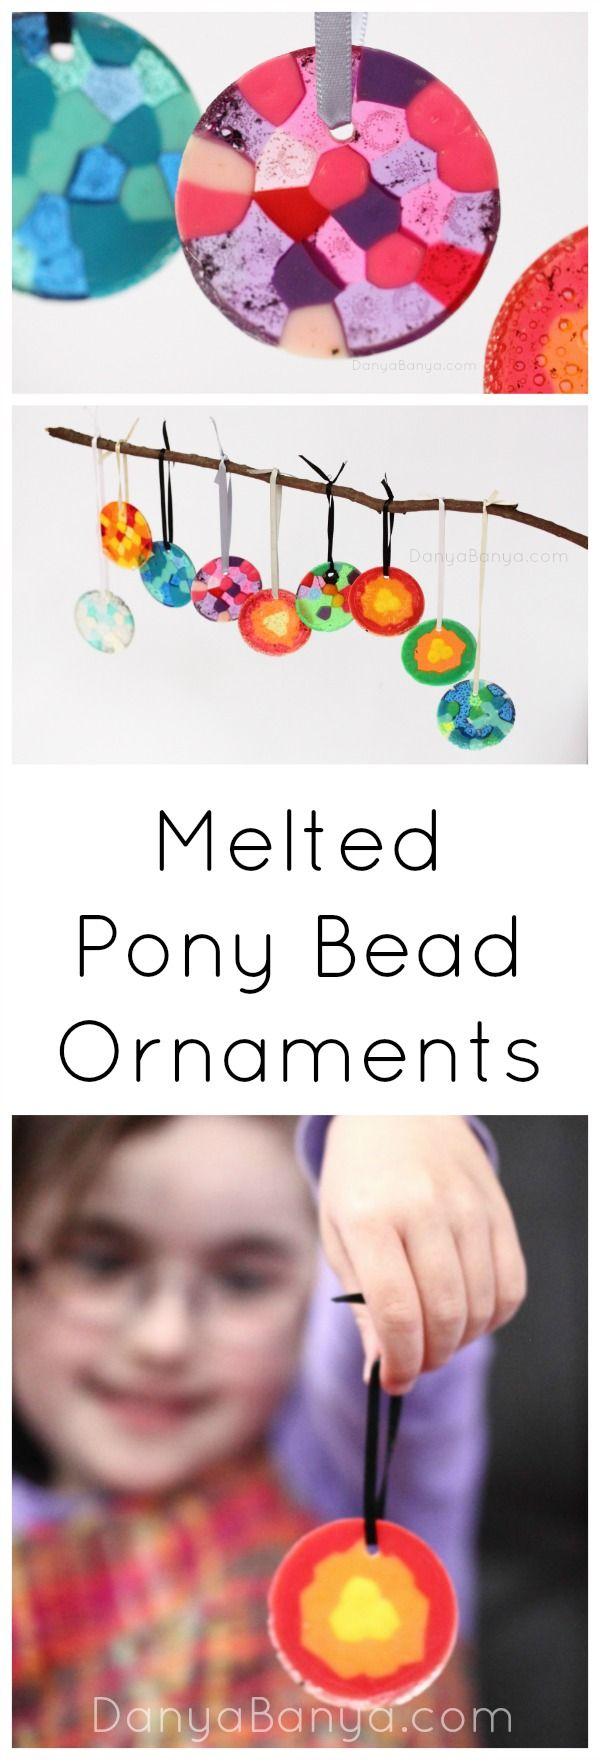 How to make melted pony bead ornaments - decorations or as a nice DIY gift ~ Danya Banya